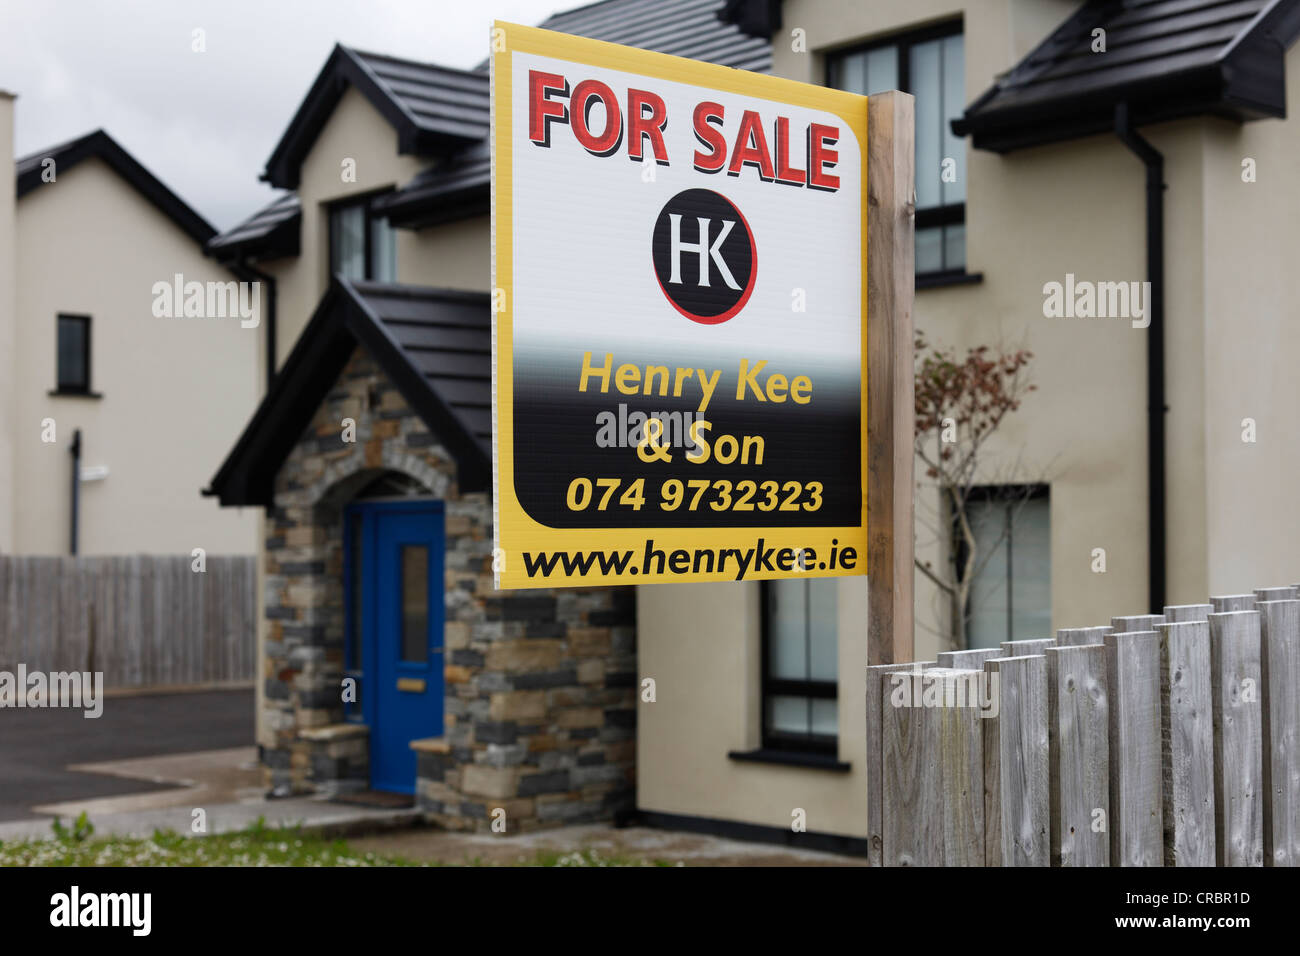 For Sale sign, house sale, Glencolumbcille, also Glencolumbkille, County Donegal, Ireland, Europe, PublicGround - Stock Image